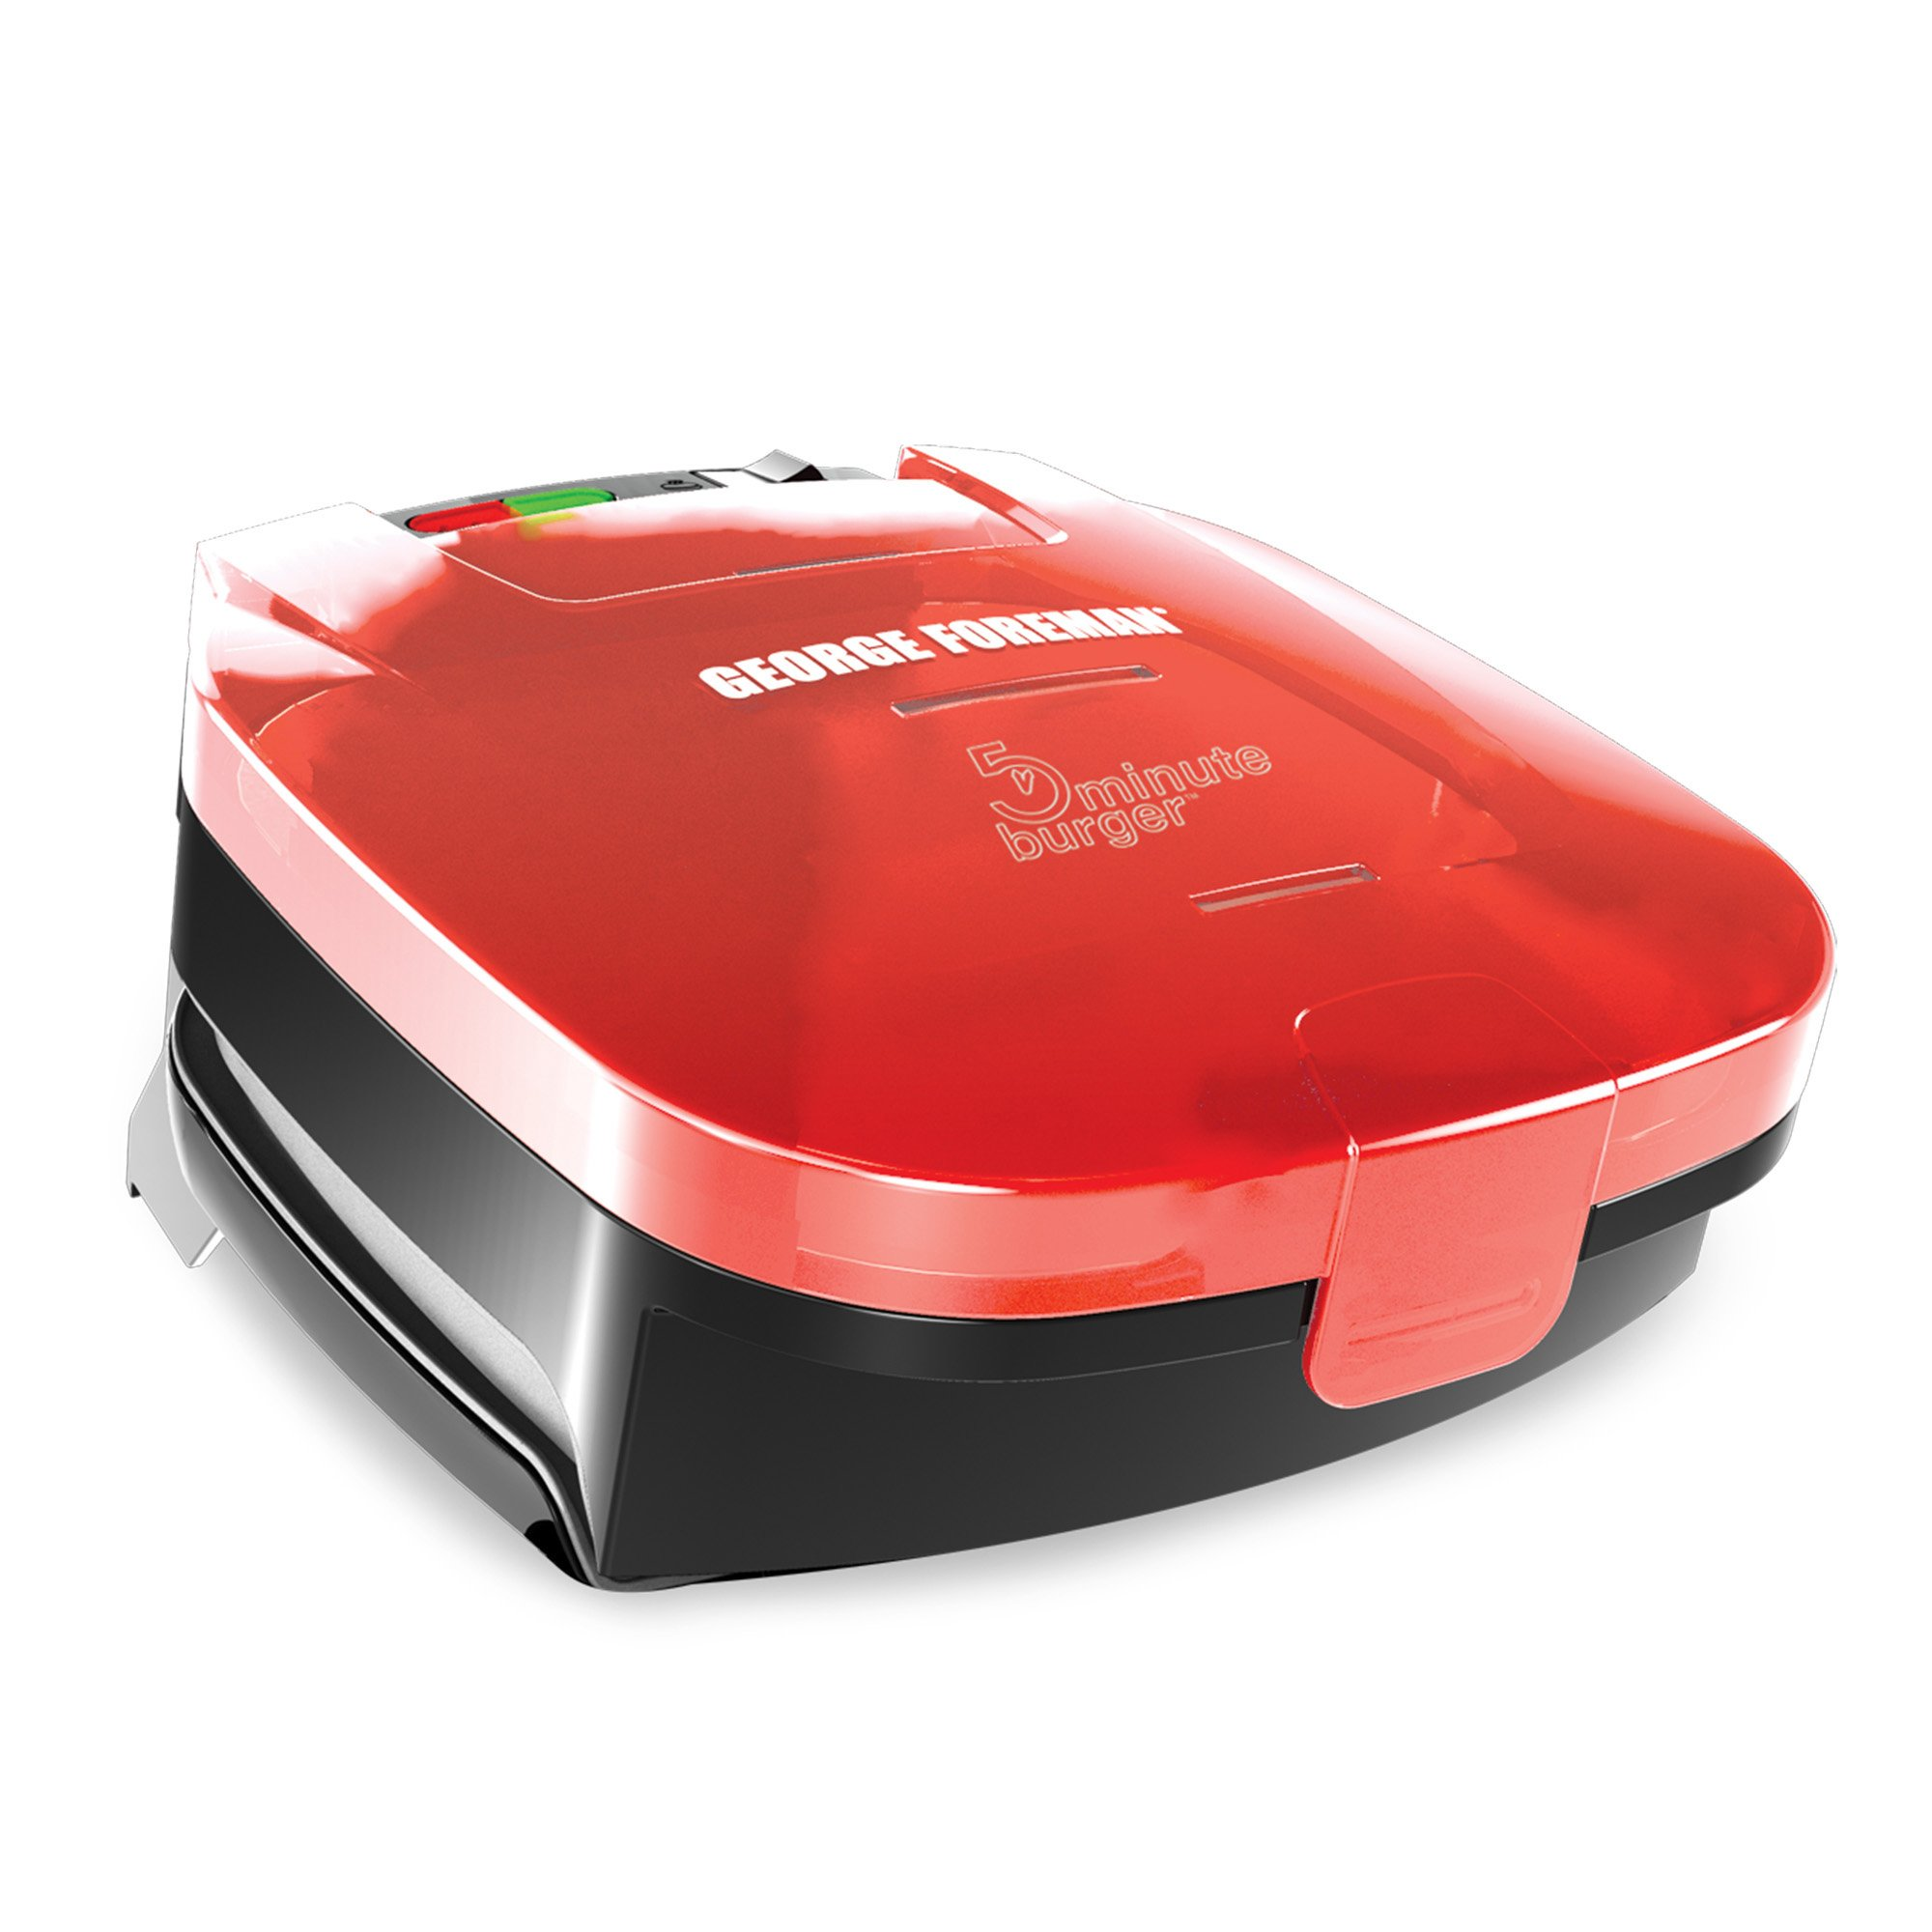 George Foreman Grill Fish